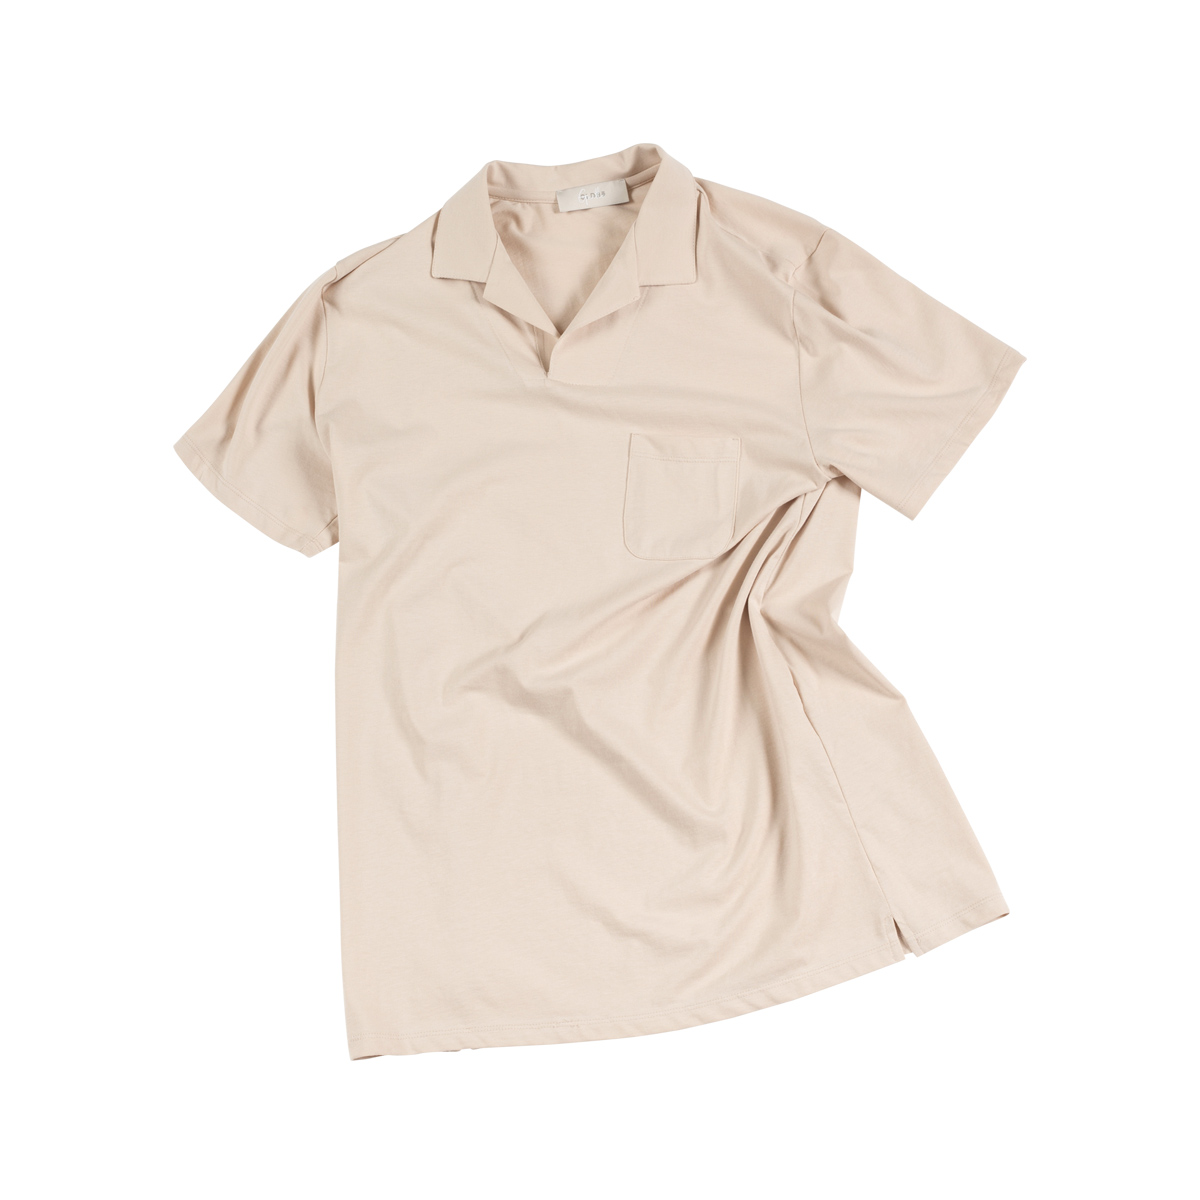 Gentle Open Collar Polo shirts - Beige